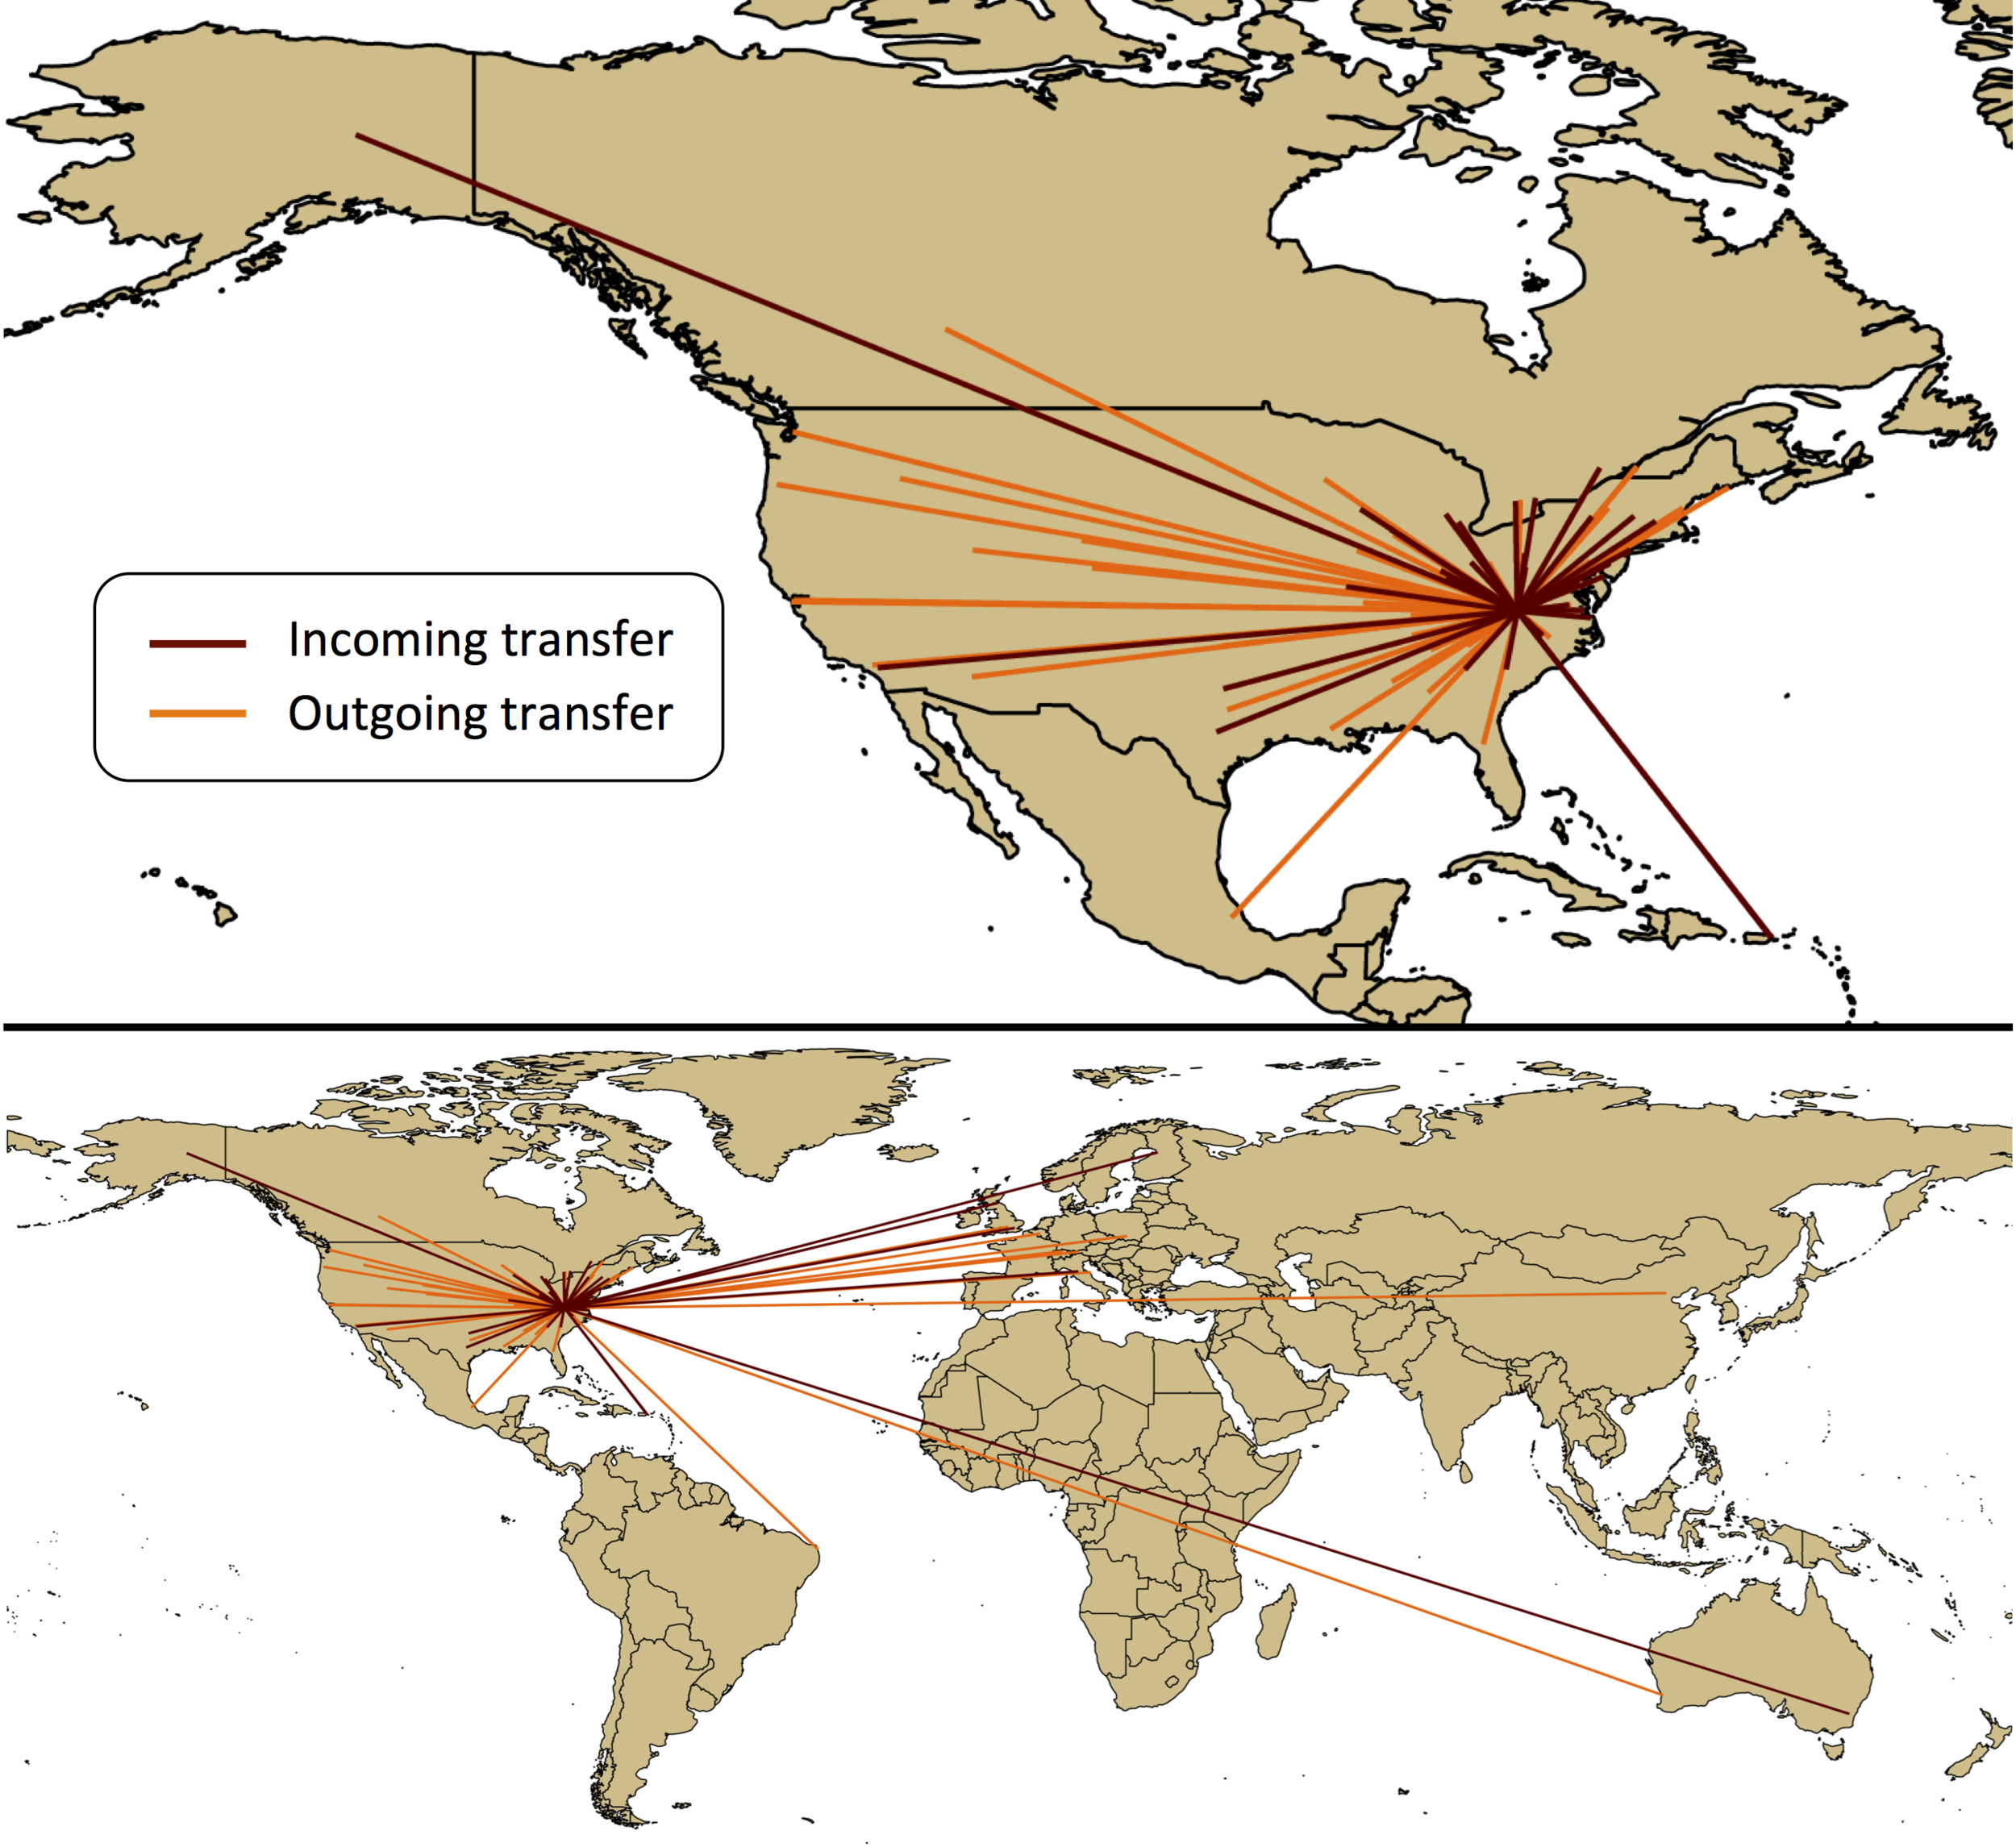 Figure legend: Transfers of specimens to the Massey Herbarium (maroon lines) and from the Massey Herbarium (orange lines) are shown. The top image shows a closer detail of transfers within North America. The bottom image shows global transfers. The lines are unweighted, so a single line can represent from 1 to 14 transfers.